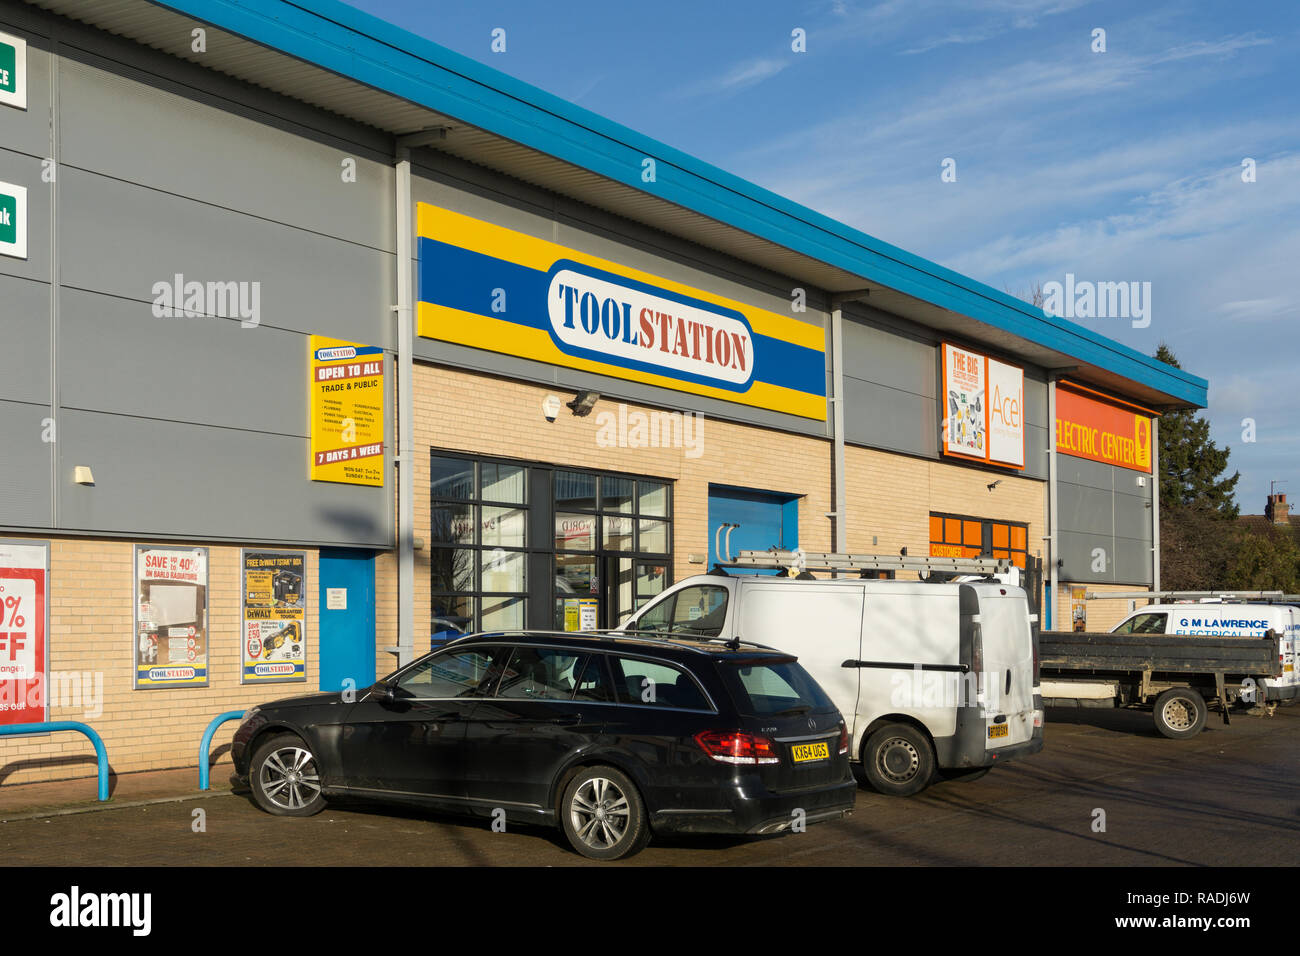 Toolstation, a retail chain selling tools and hardware products, Northampton, UK; subsidiary of Travis Perkins. - Stock Image